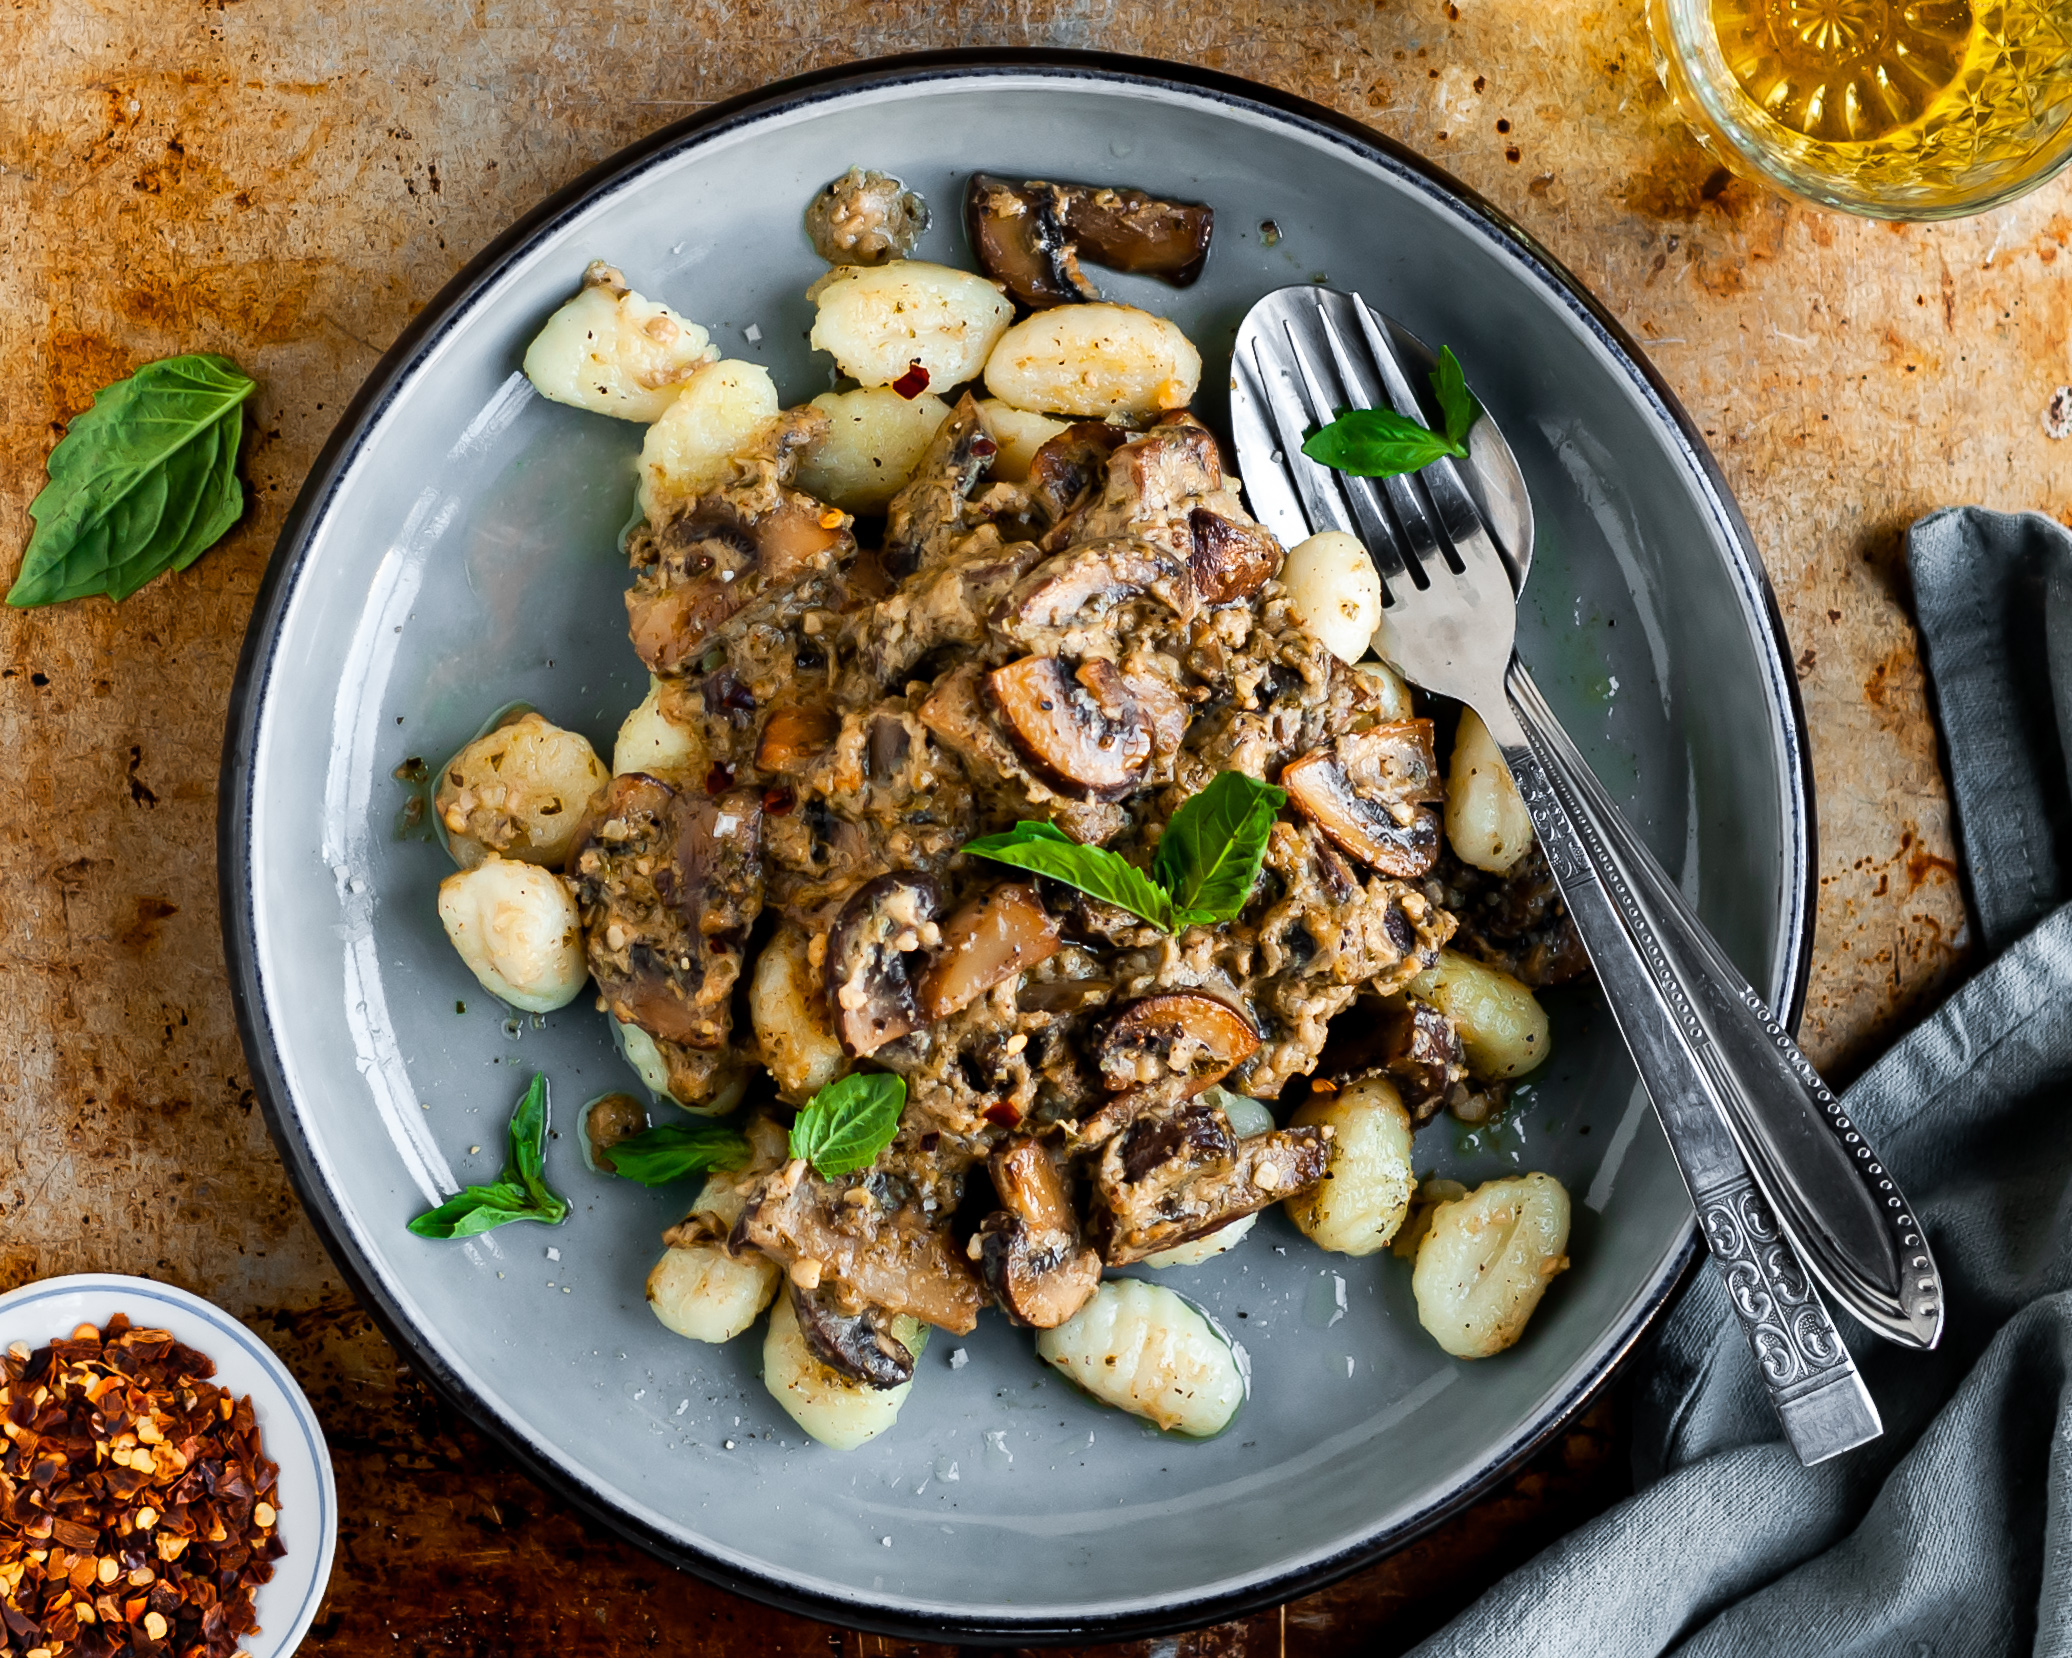 Plate filled with Pan-Fried Gnocchi and Seared Mushrooms in a Cashew Butter Pesto Sauce served with chilli flakes, fresh basil